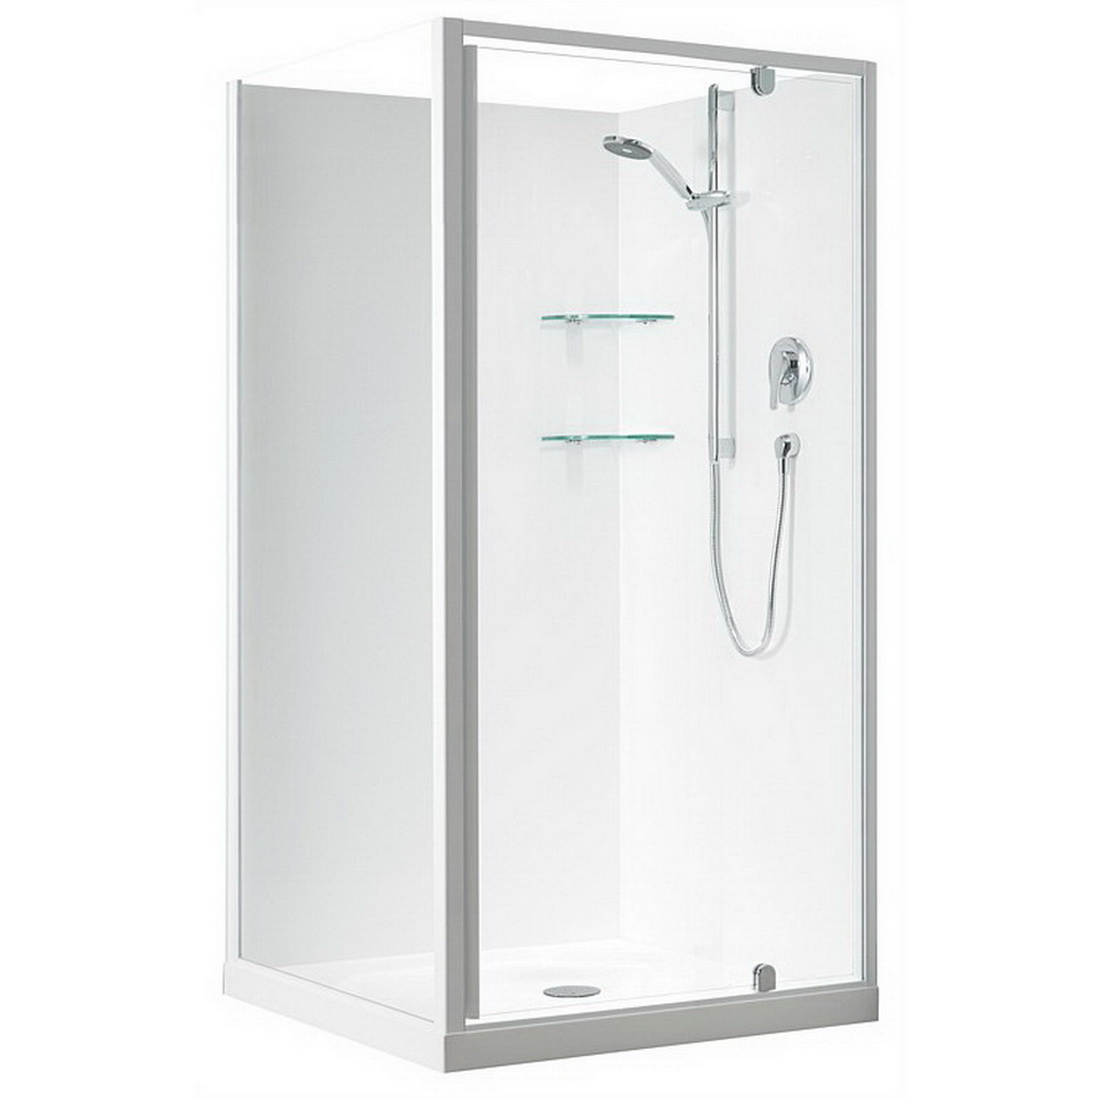 Sierra 900 x 900mm 2 Sided Square Flat Shower Enclosure White